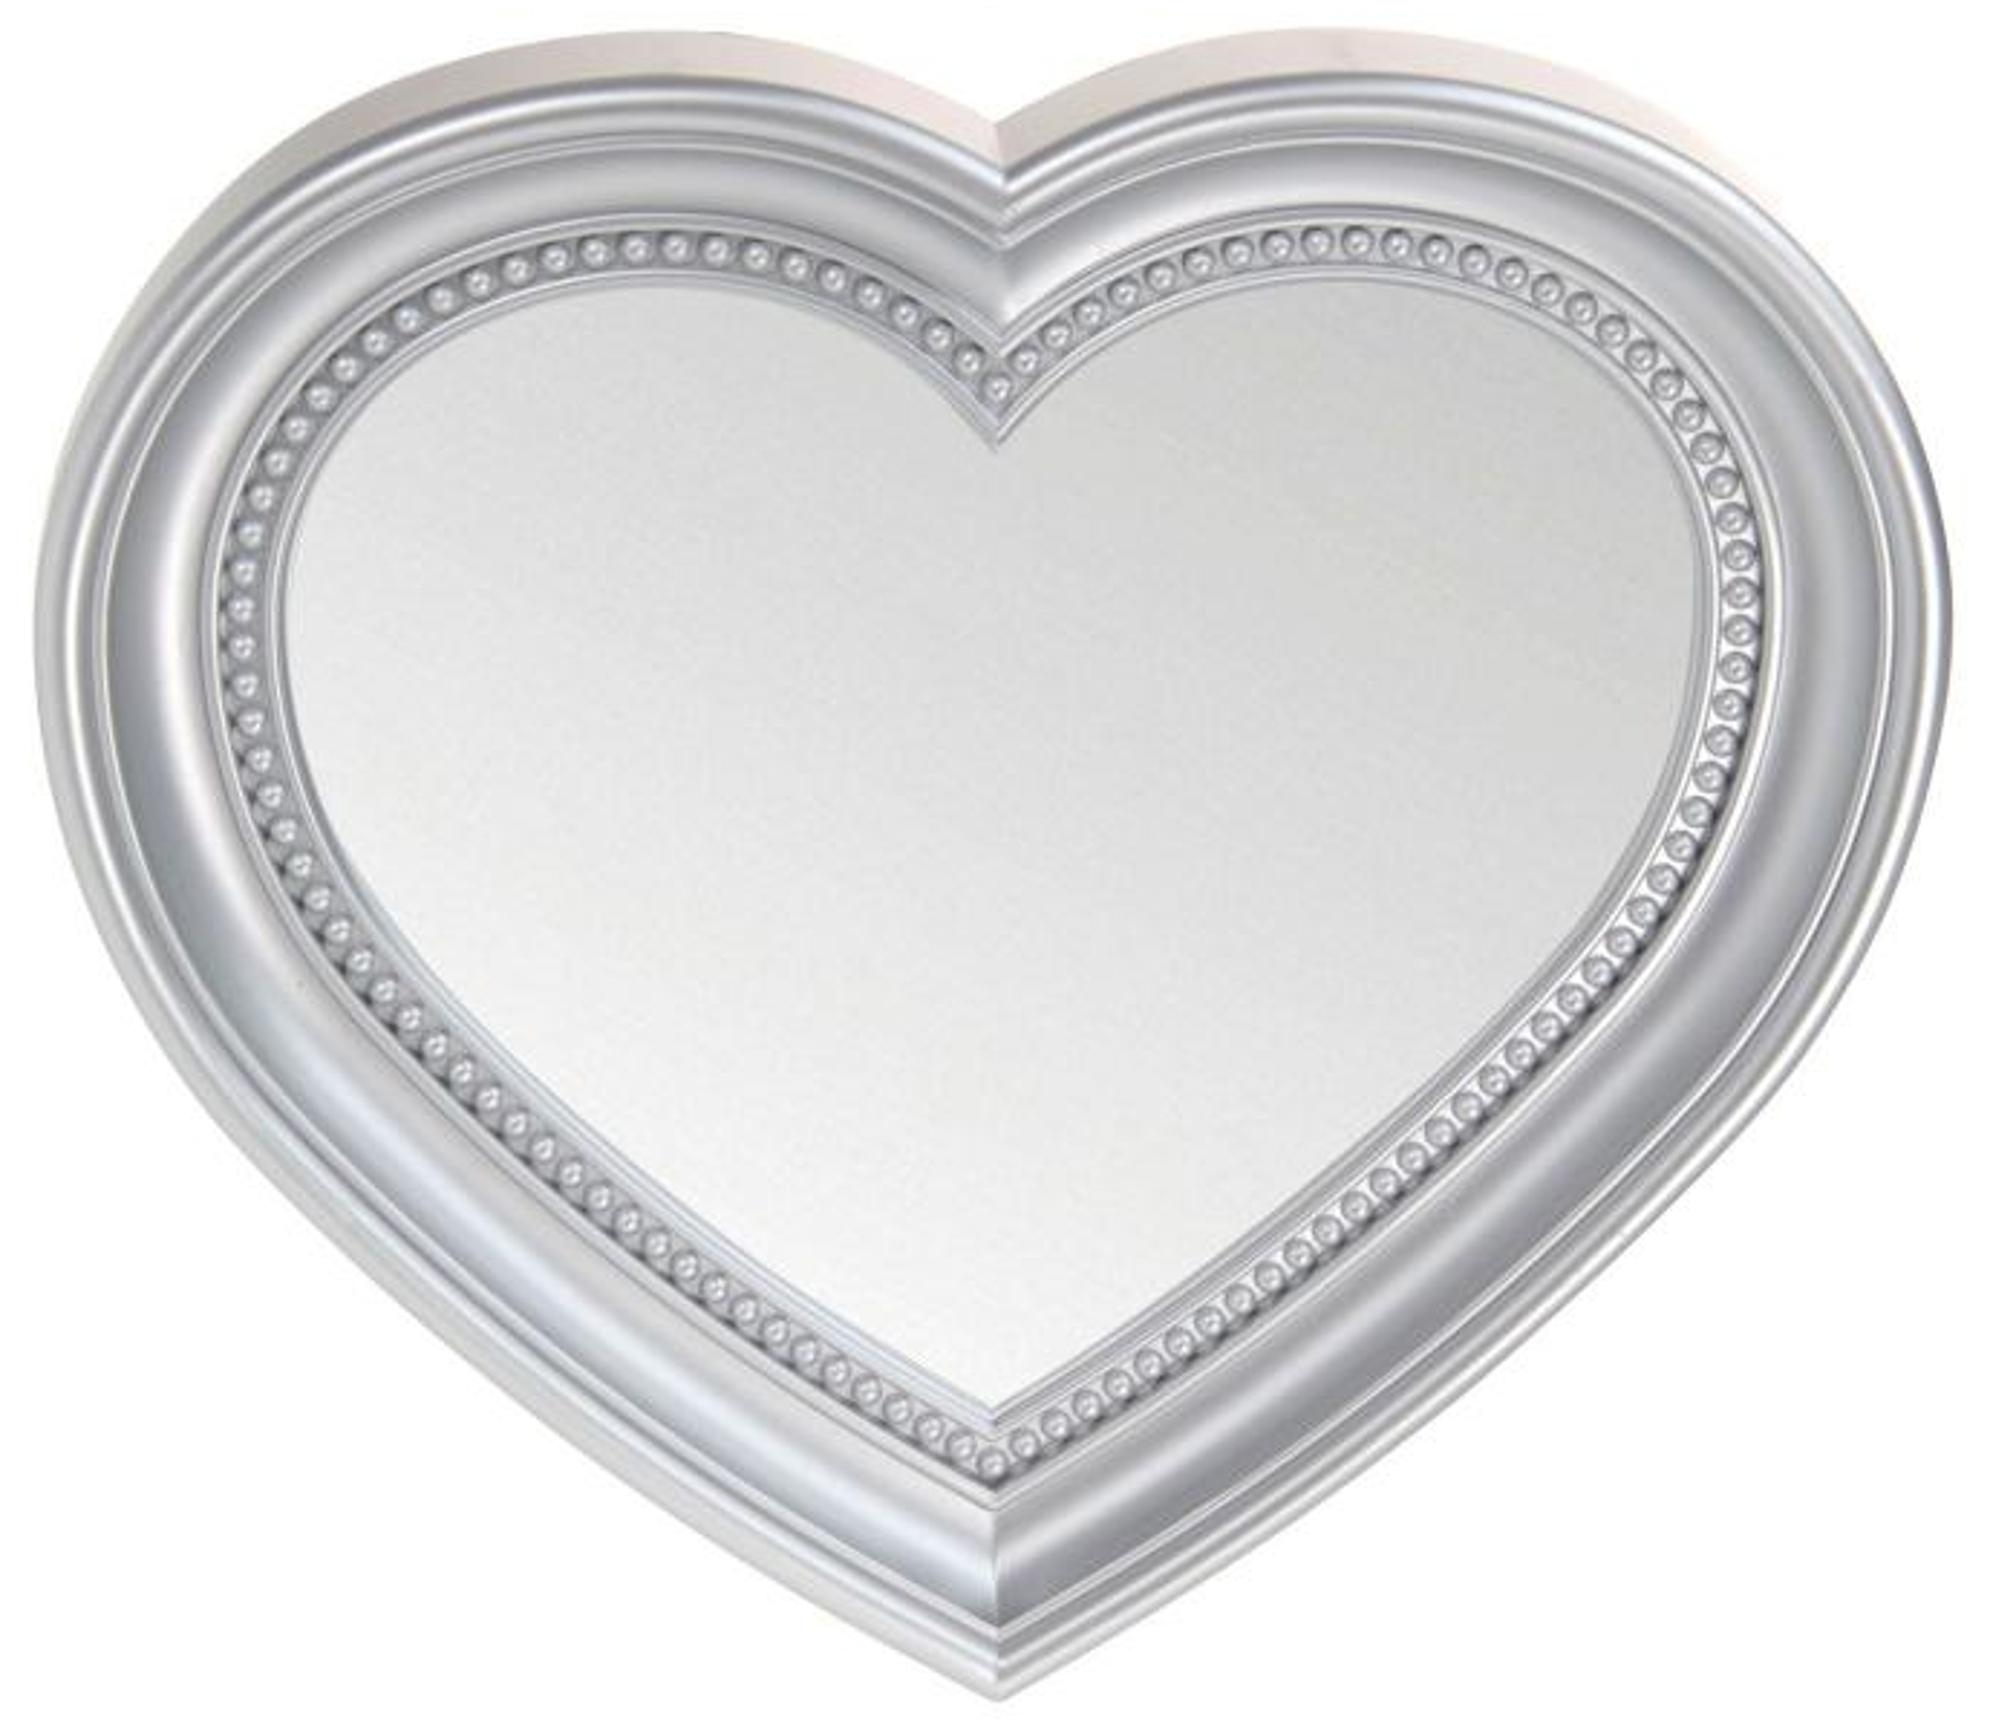 Heart Shaped Wall Hanging Mirror, Silver 45Cm | Blendboutique Intended For Heart Shaped Mirror For Wall (View 8 of 20)